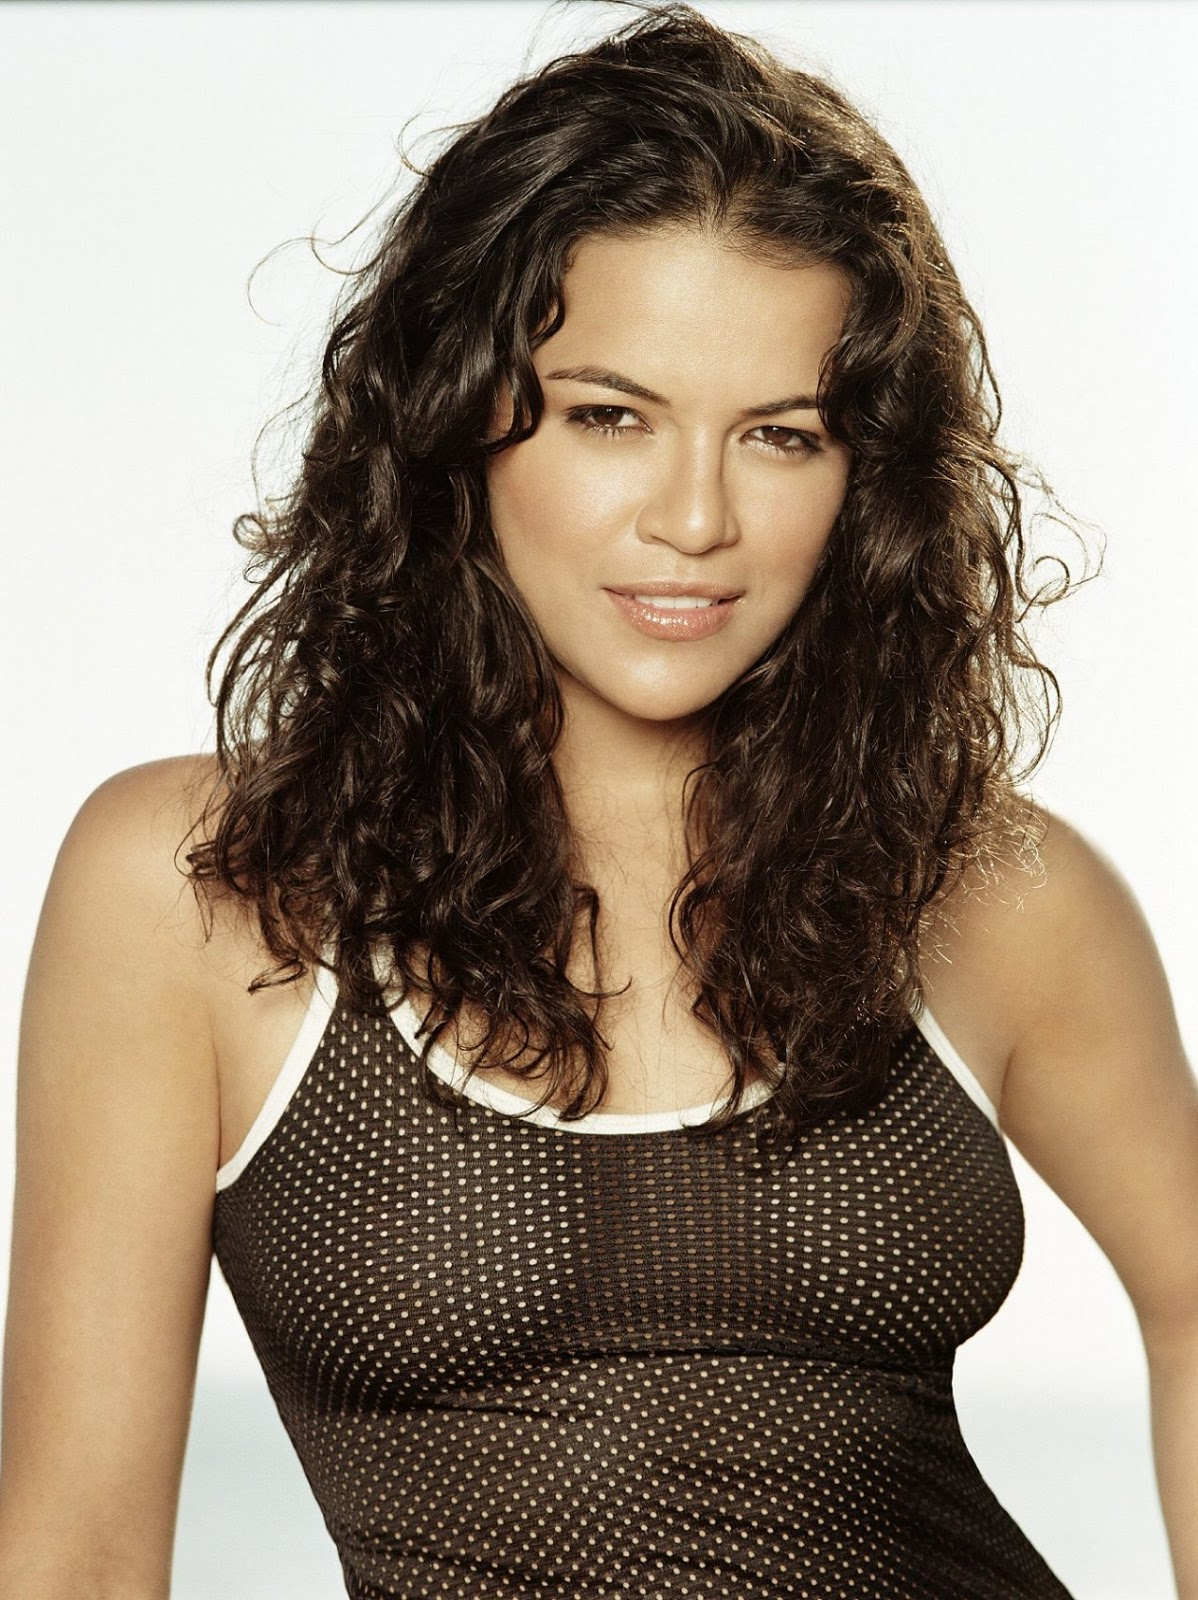 Michelle Rodriguez Nude Photos 30